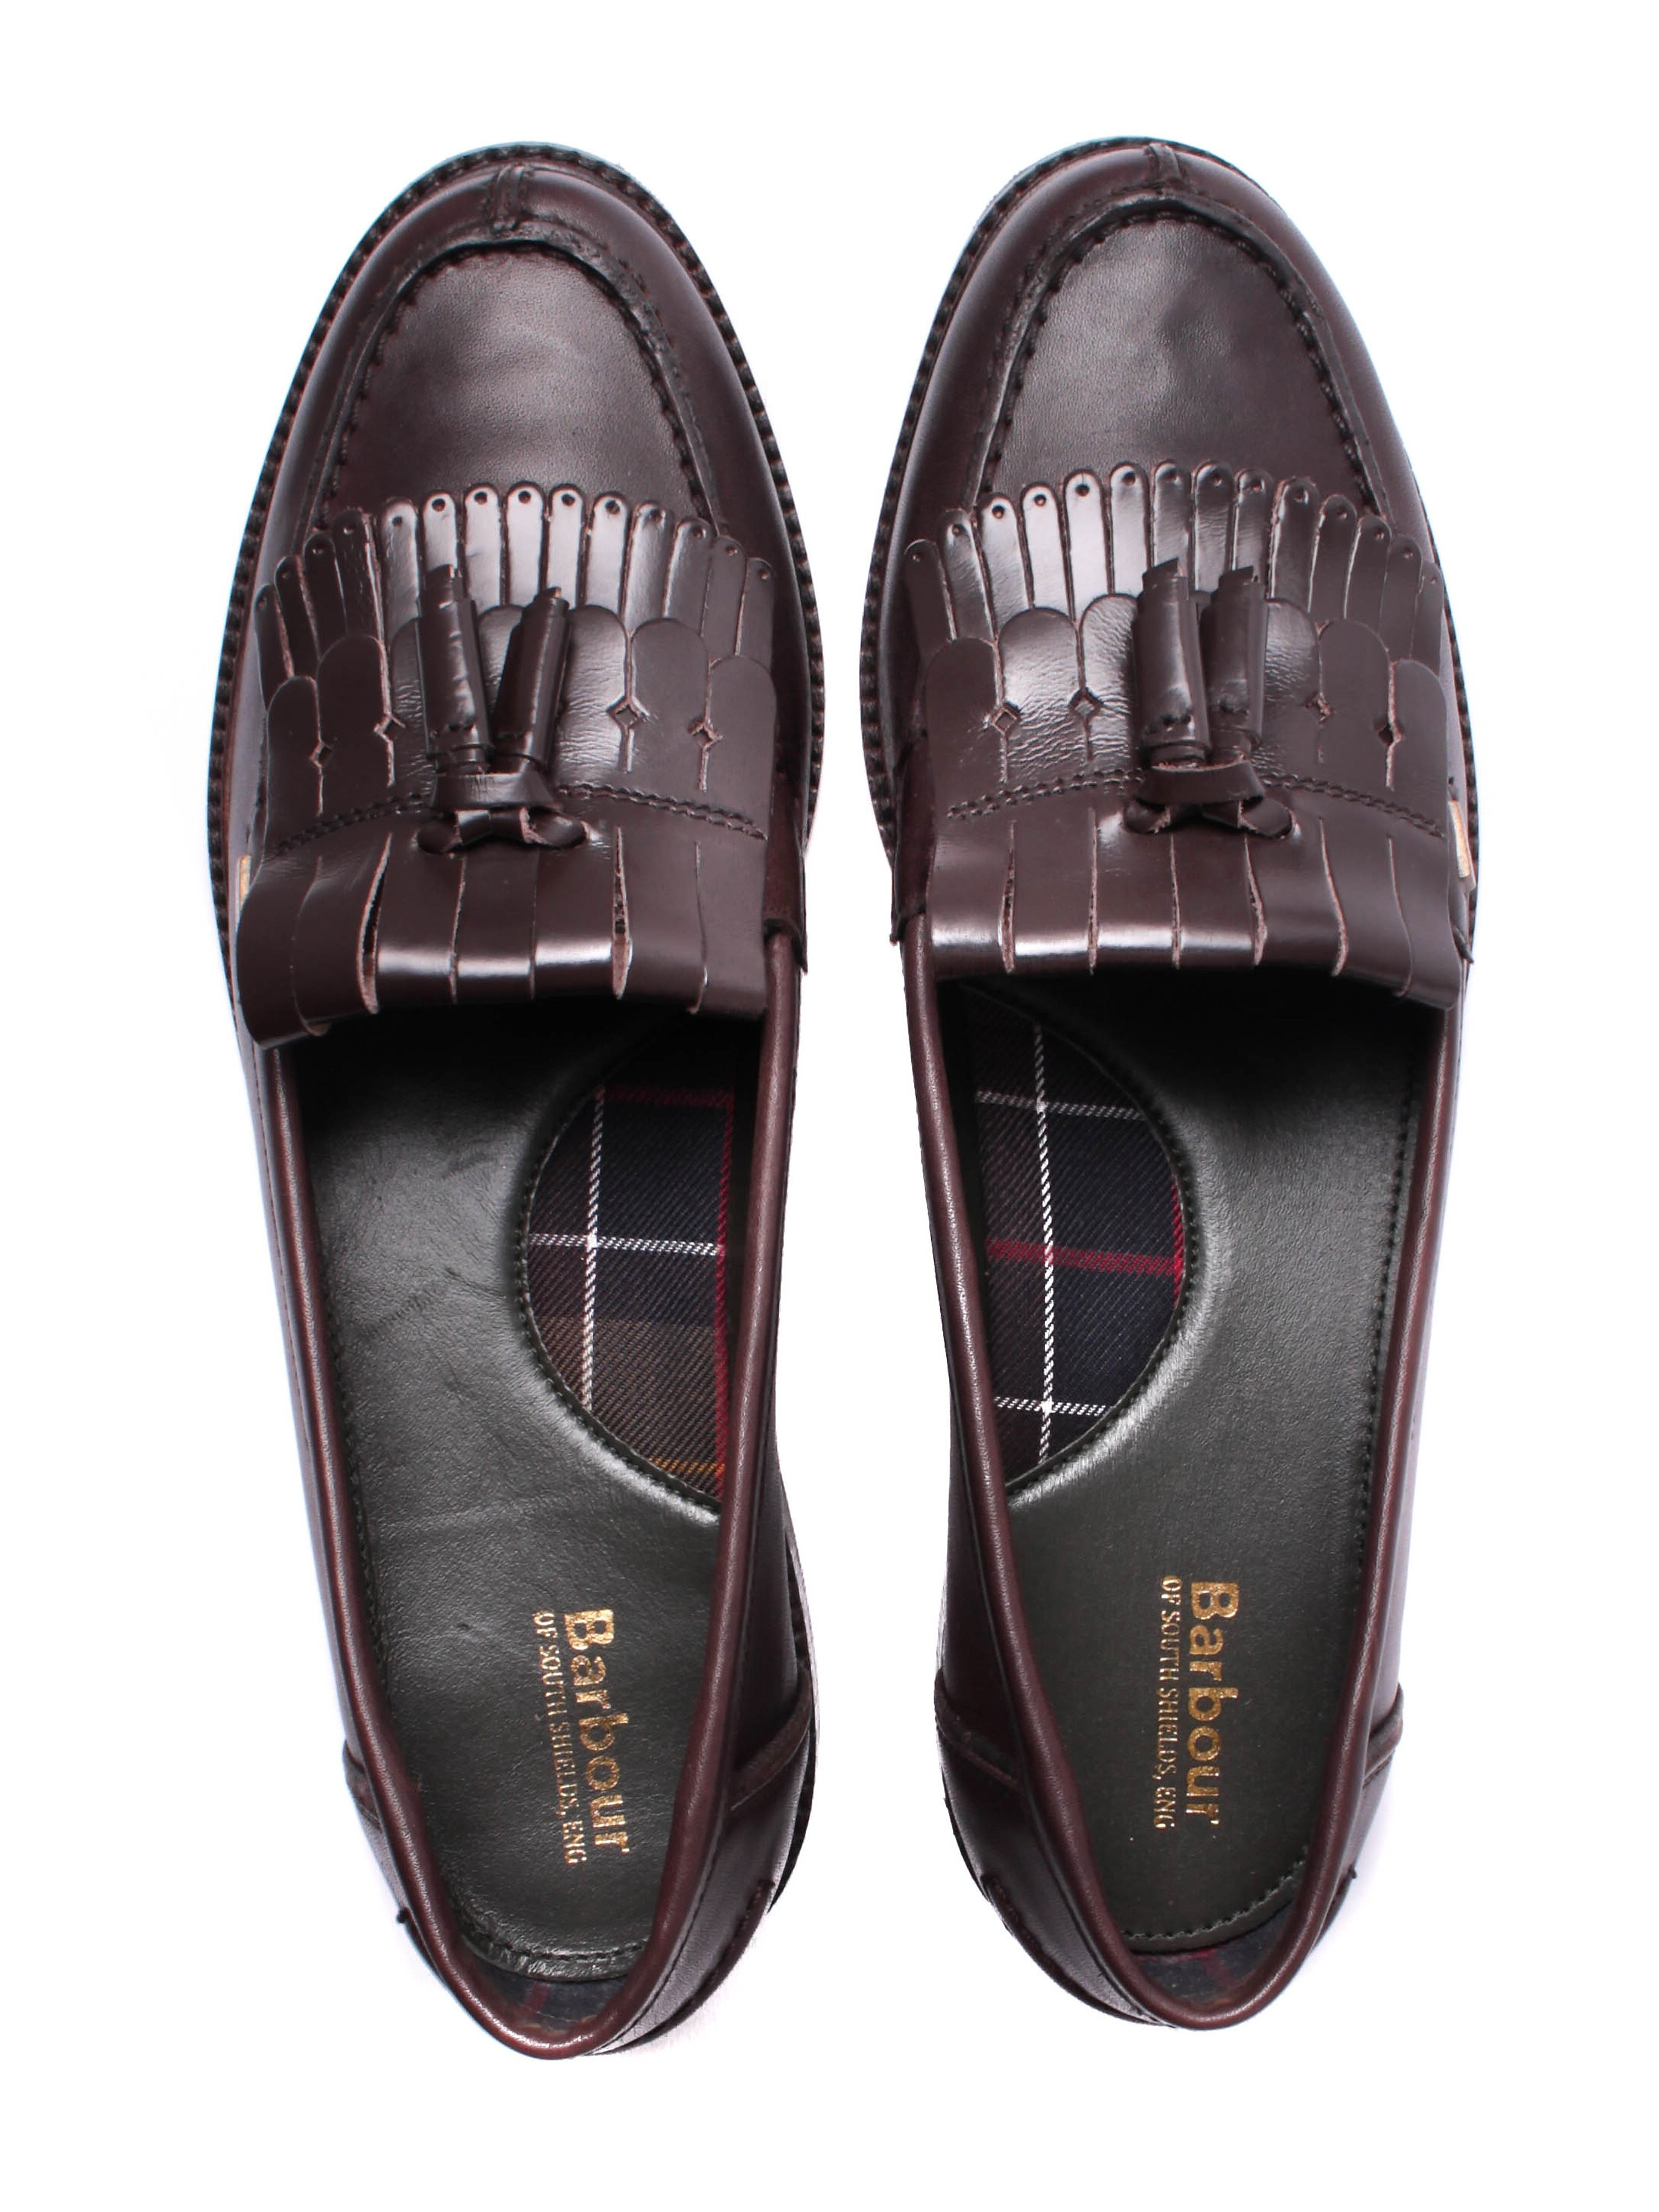 Barbour Women's Olivia Oiled Leather Tassel Loafers - Brown